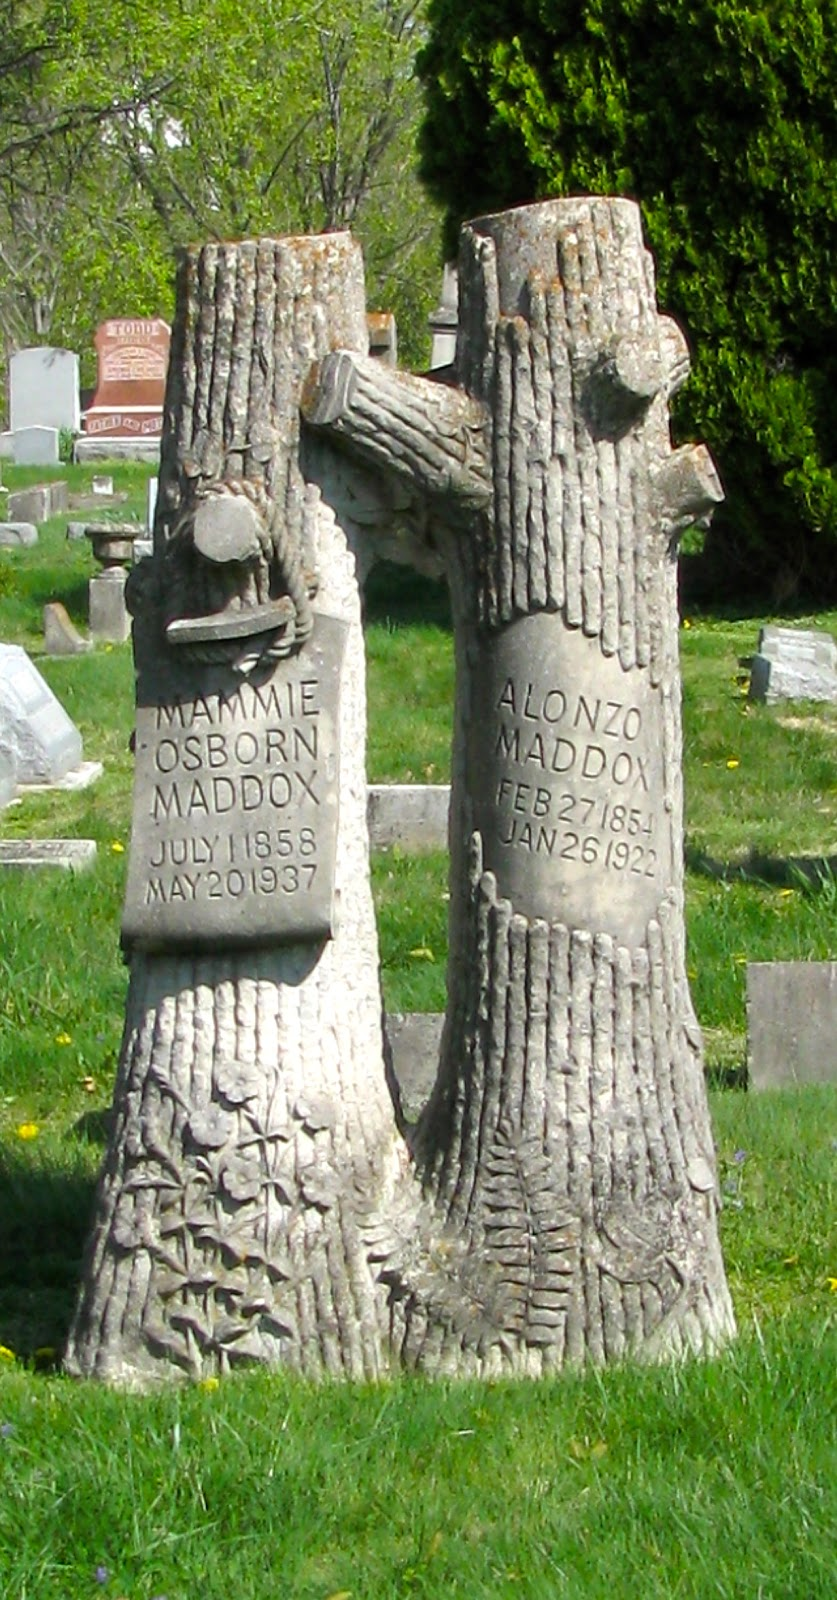 A Grave Interest Those Amazing Tree Stones